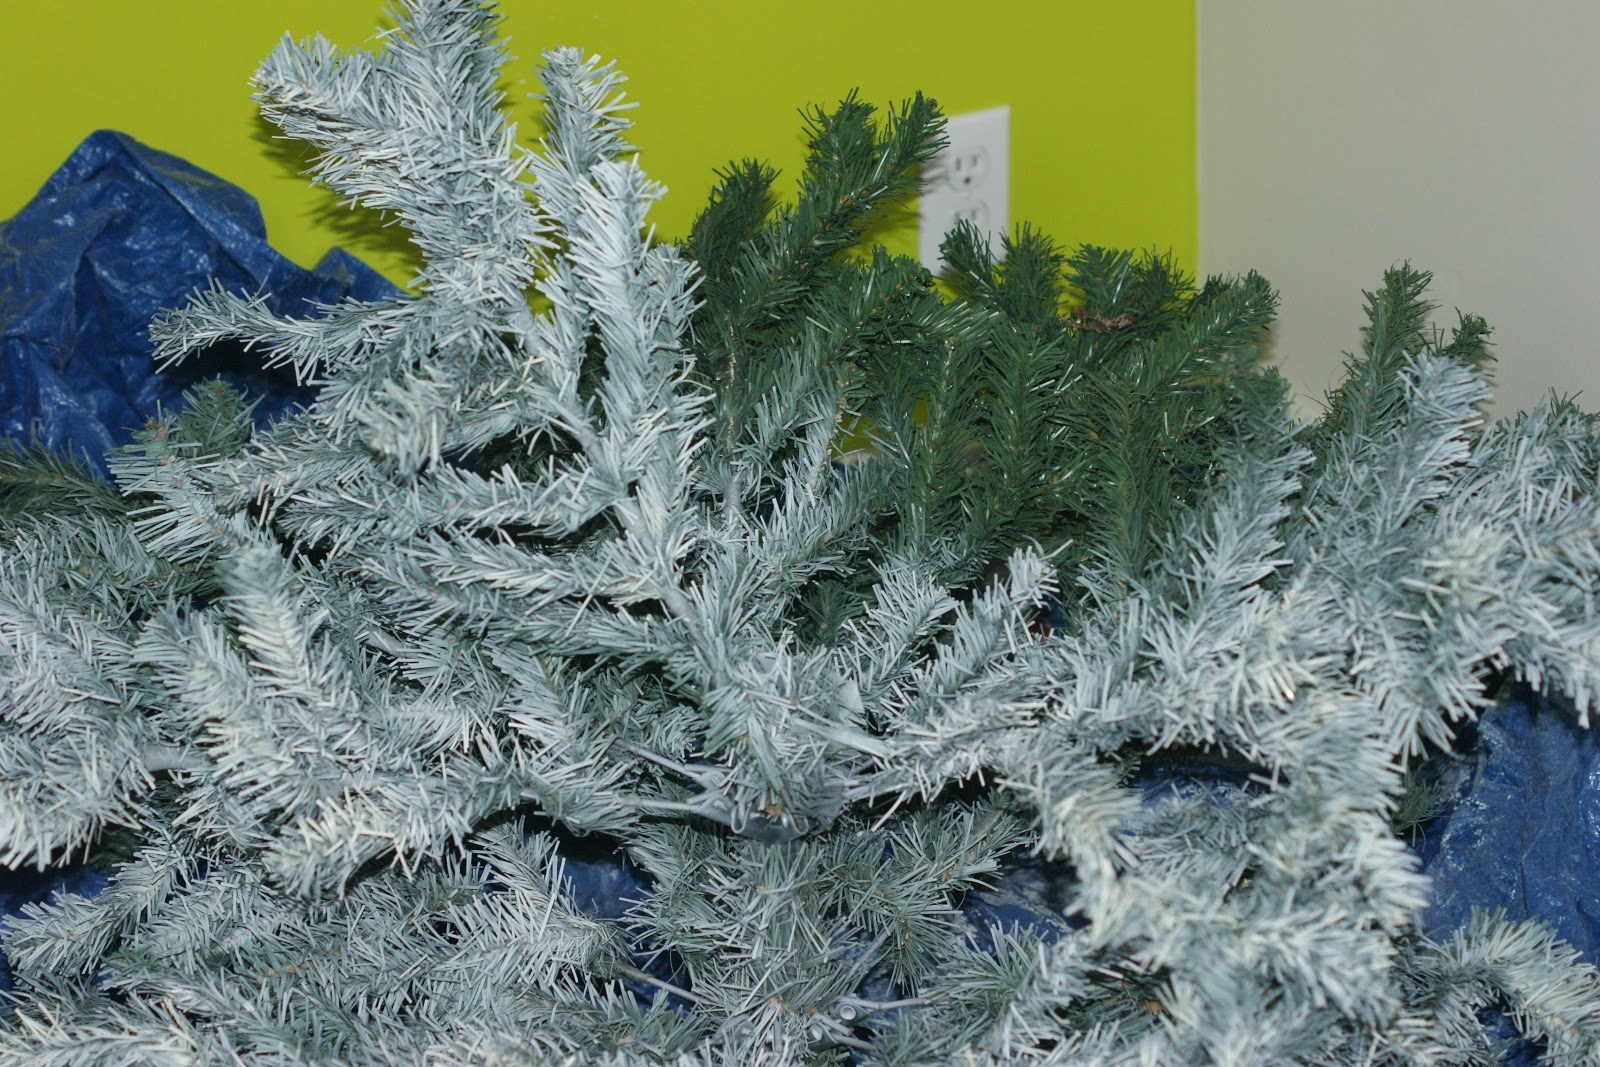 Quirky Artist Loft: How to Paint a Christmas Tree from Green to White